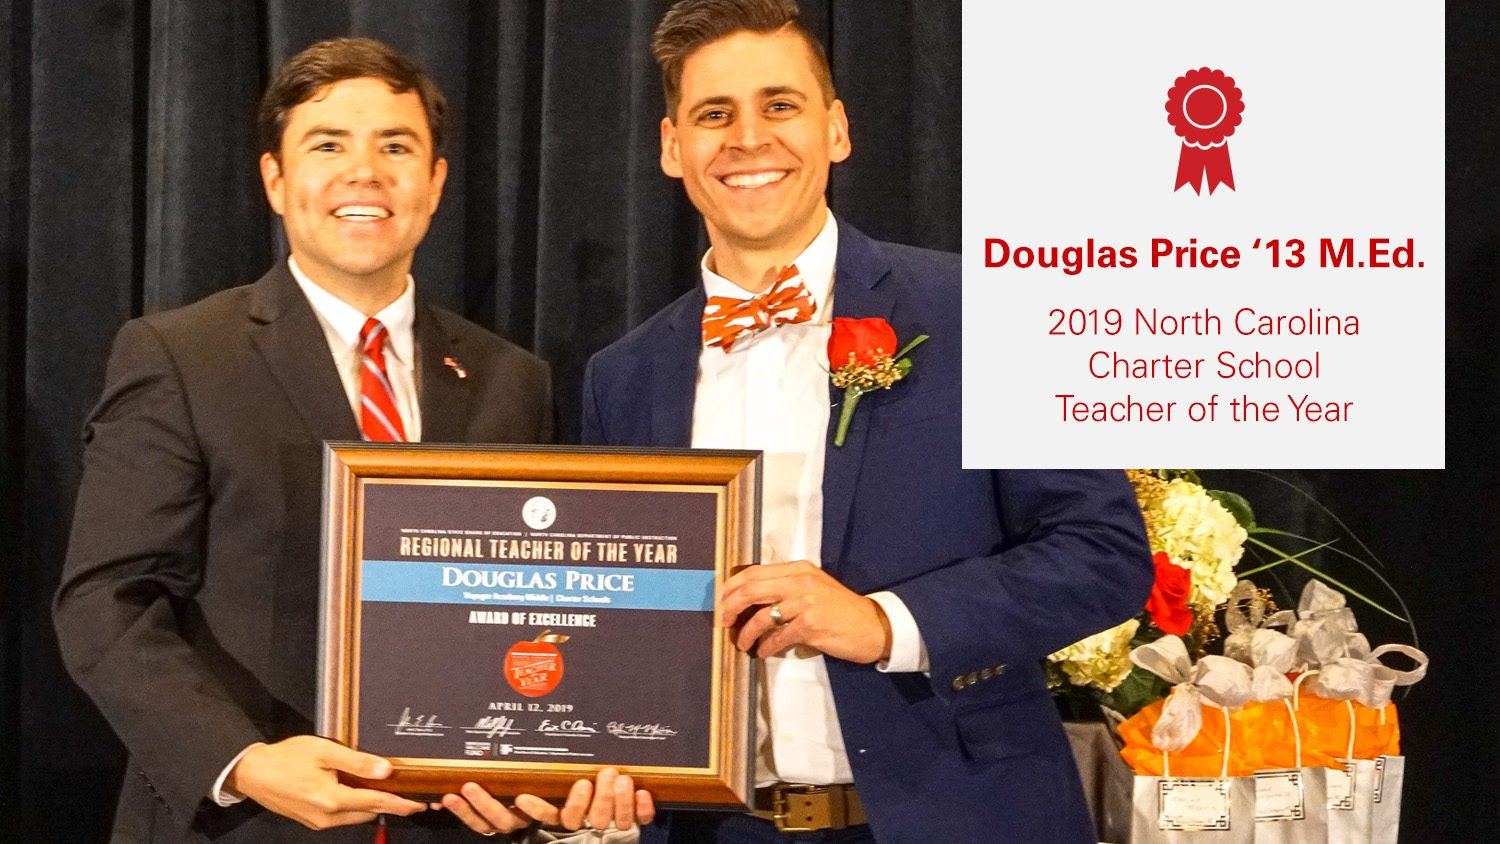 Douglas Price '13, NC Charter School Teacher of the Year, stands with State Superintendent Mark Johnson